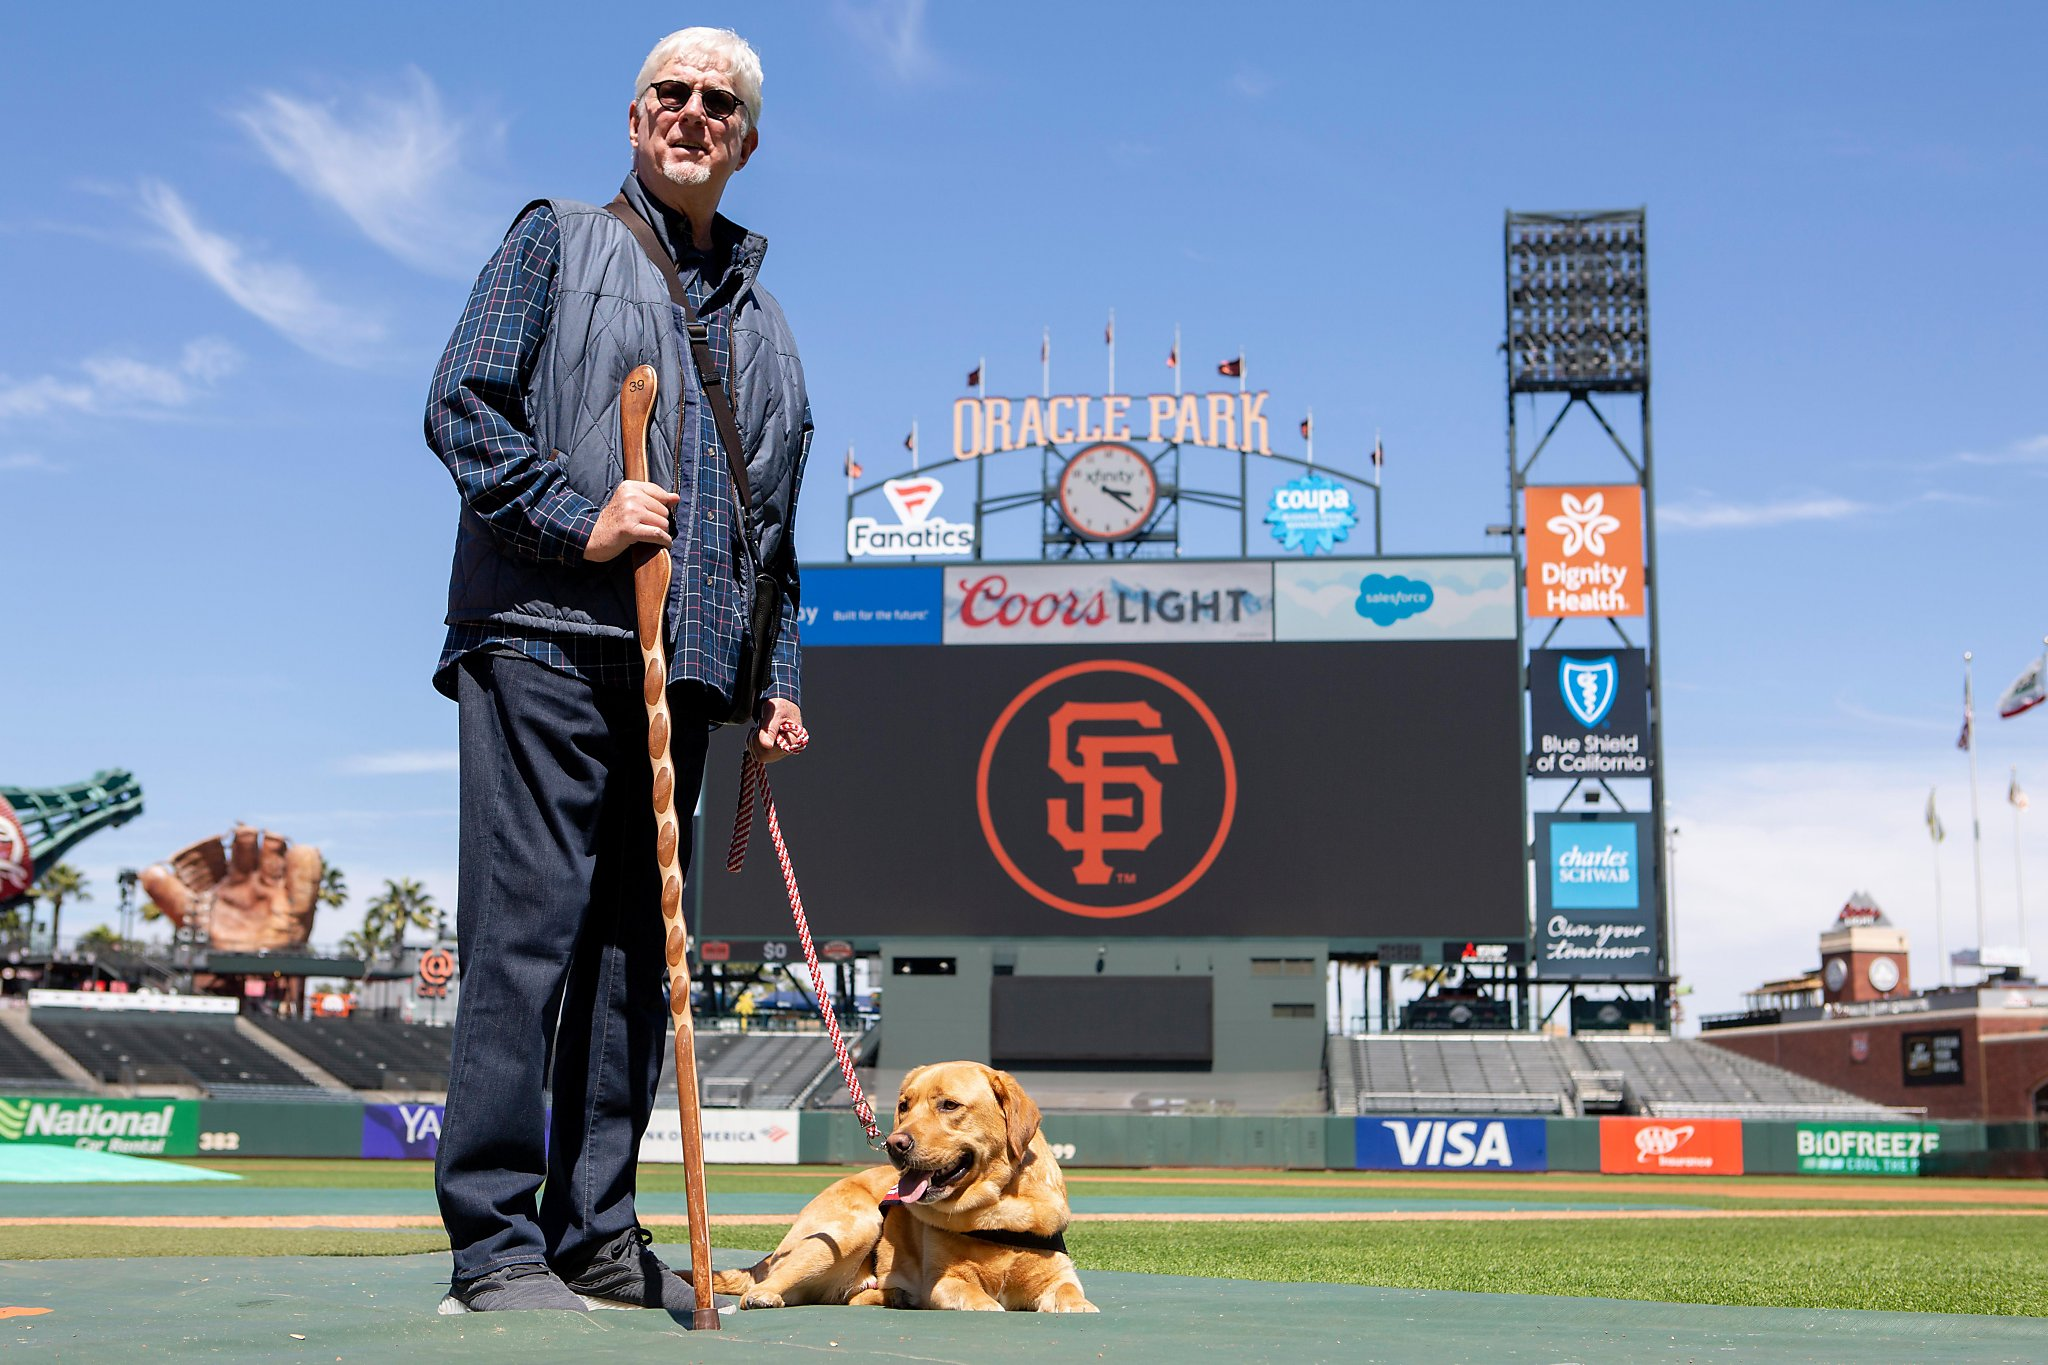 Giants announcer Mike Krukow leans on his service dog, Patriot, for support